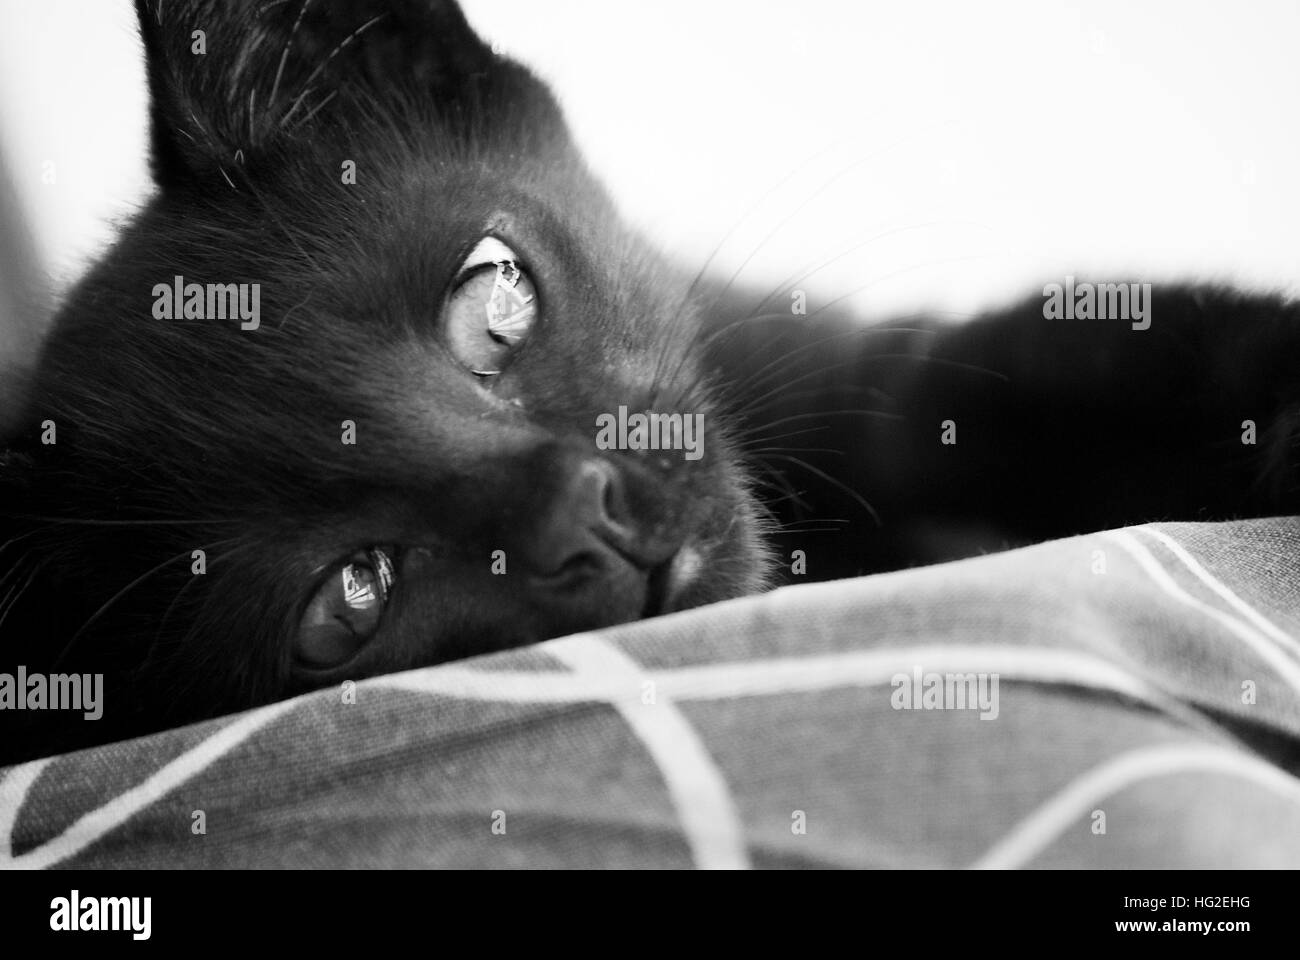 The melancholic cat! - Stock Image